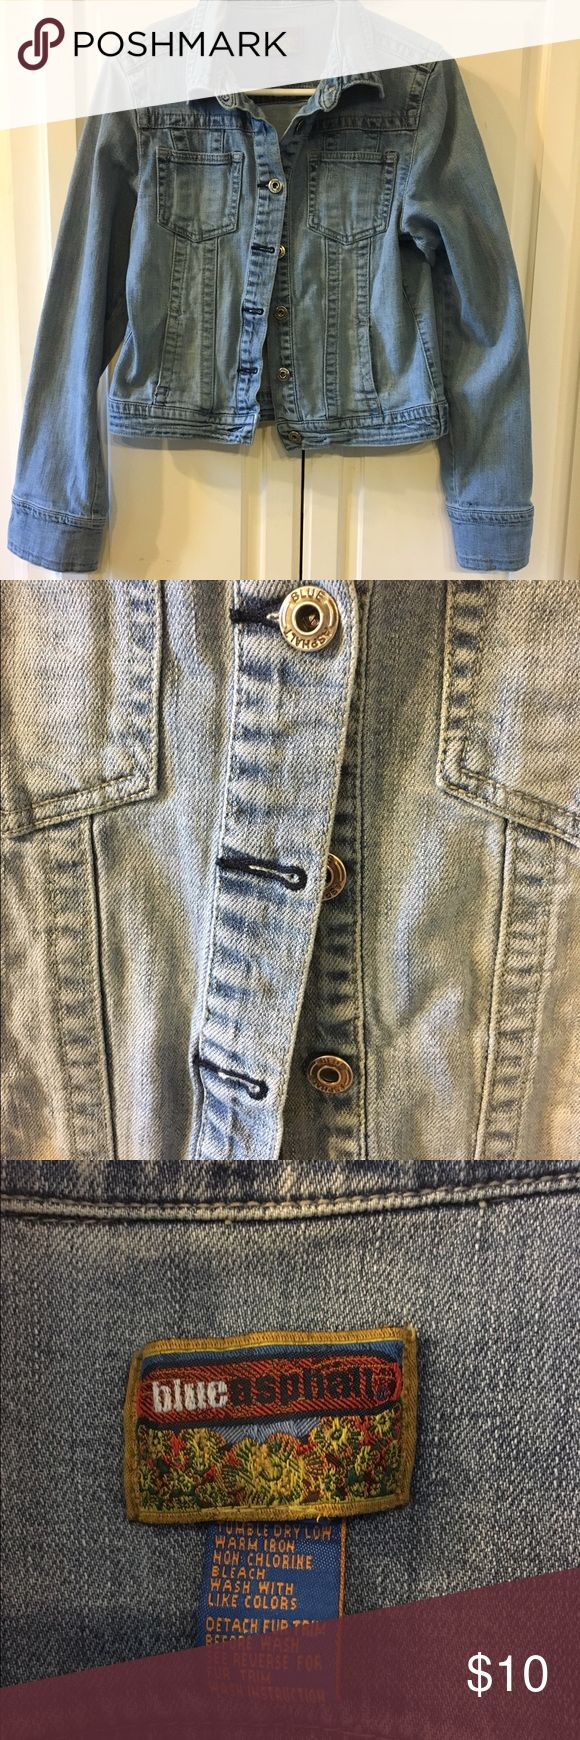 Ladies Denim Jacket Gently used.  Great condition! No stains or holes.  Goes with just about any outfit! Jackets & Coats Jean Jackets